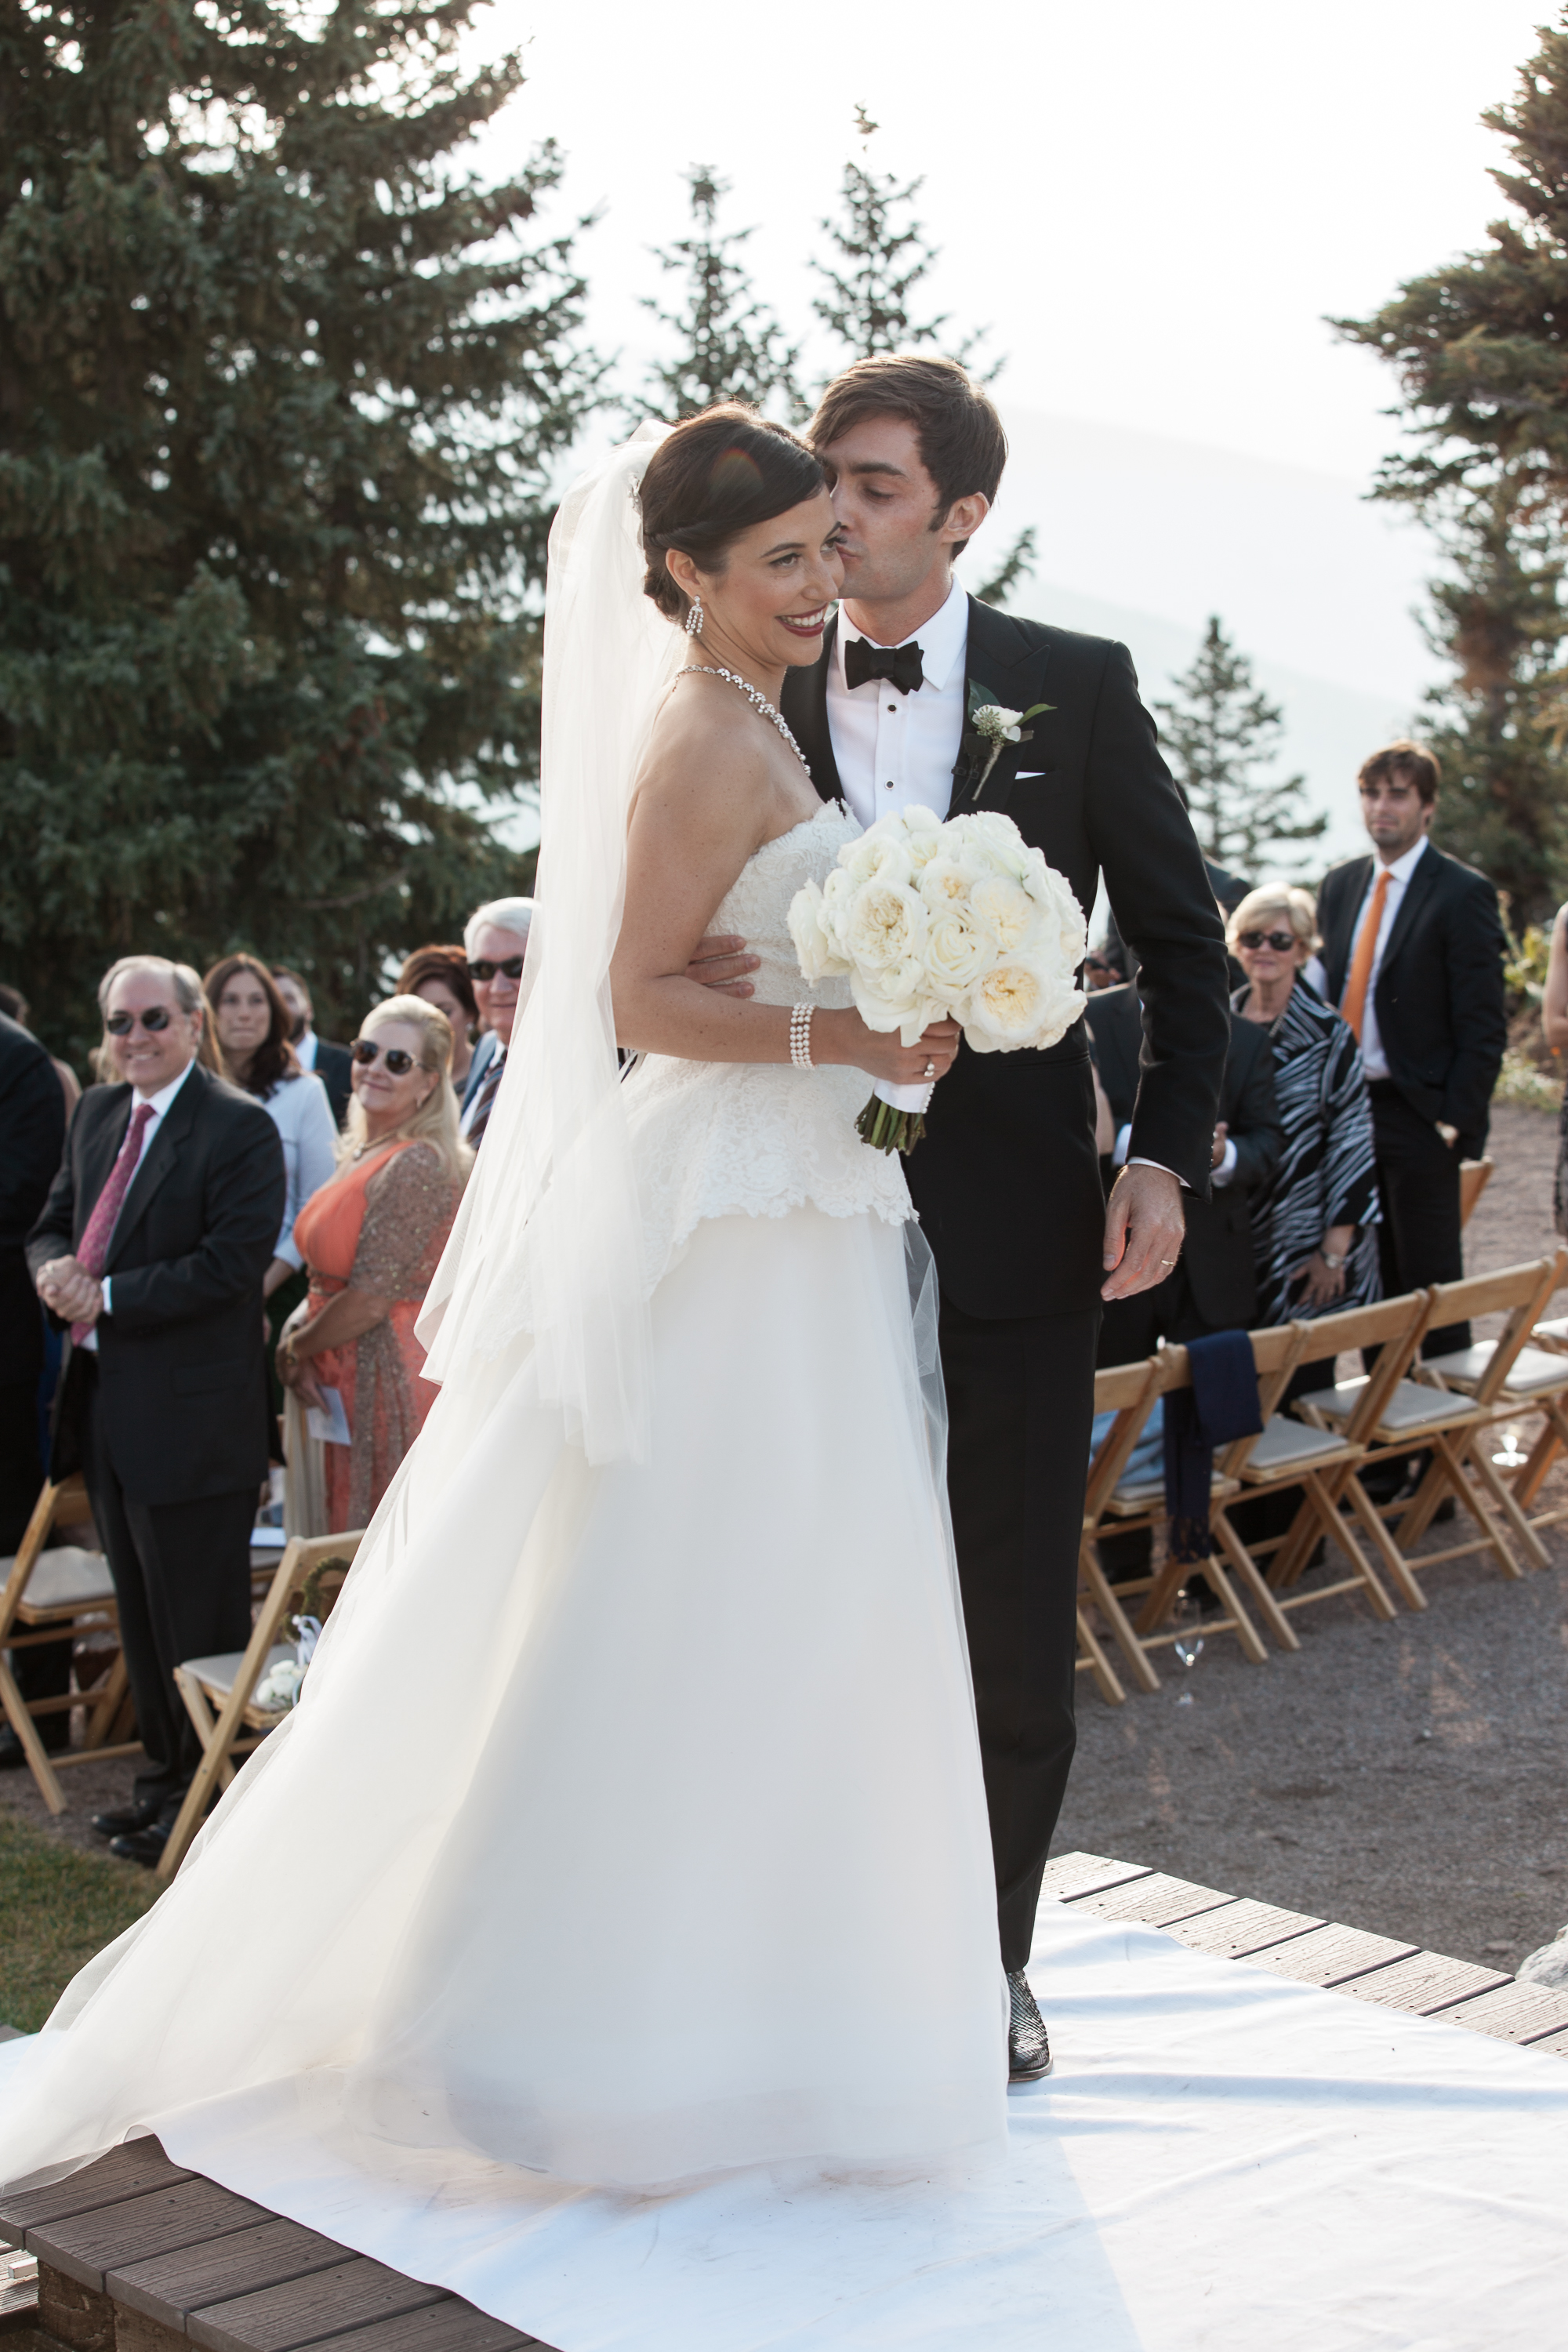 Beautiful Bride and Groom Aspen Mountain Wedding